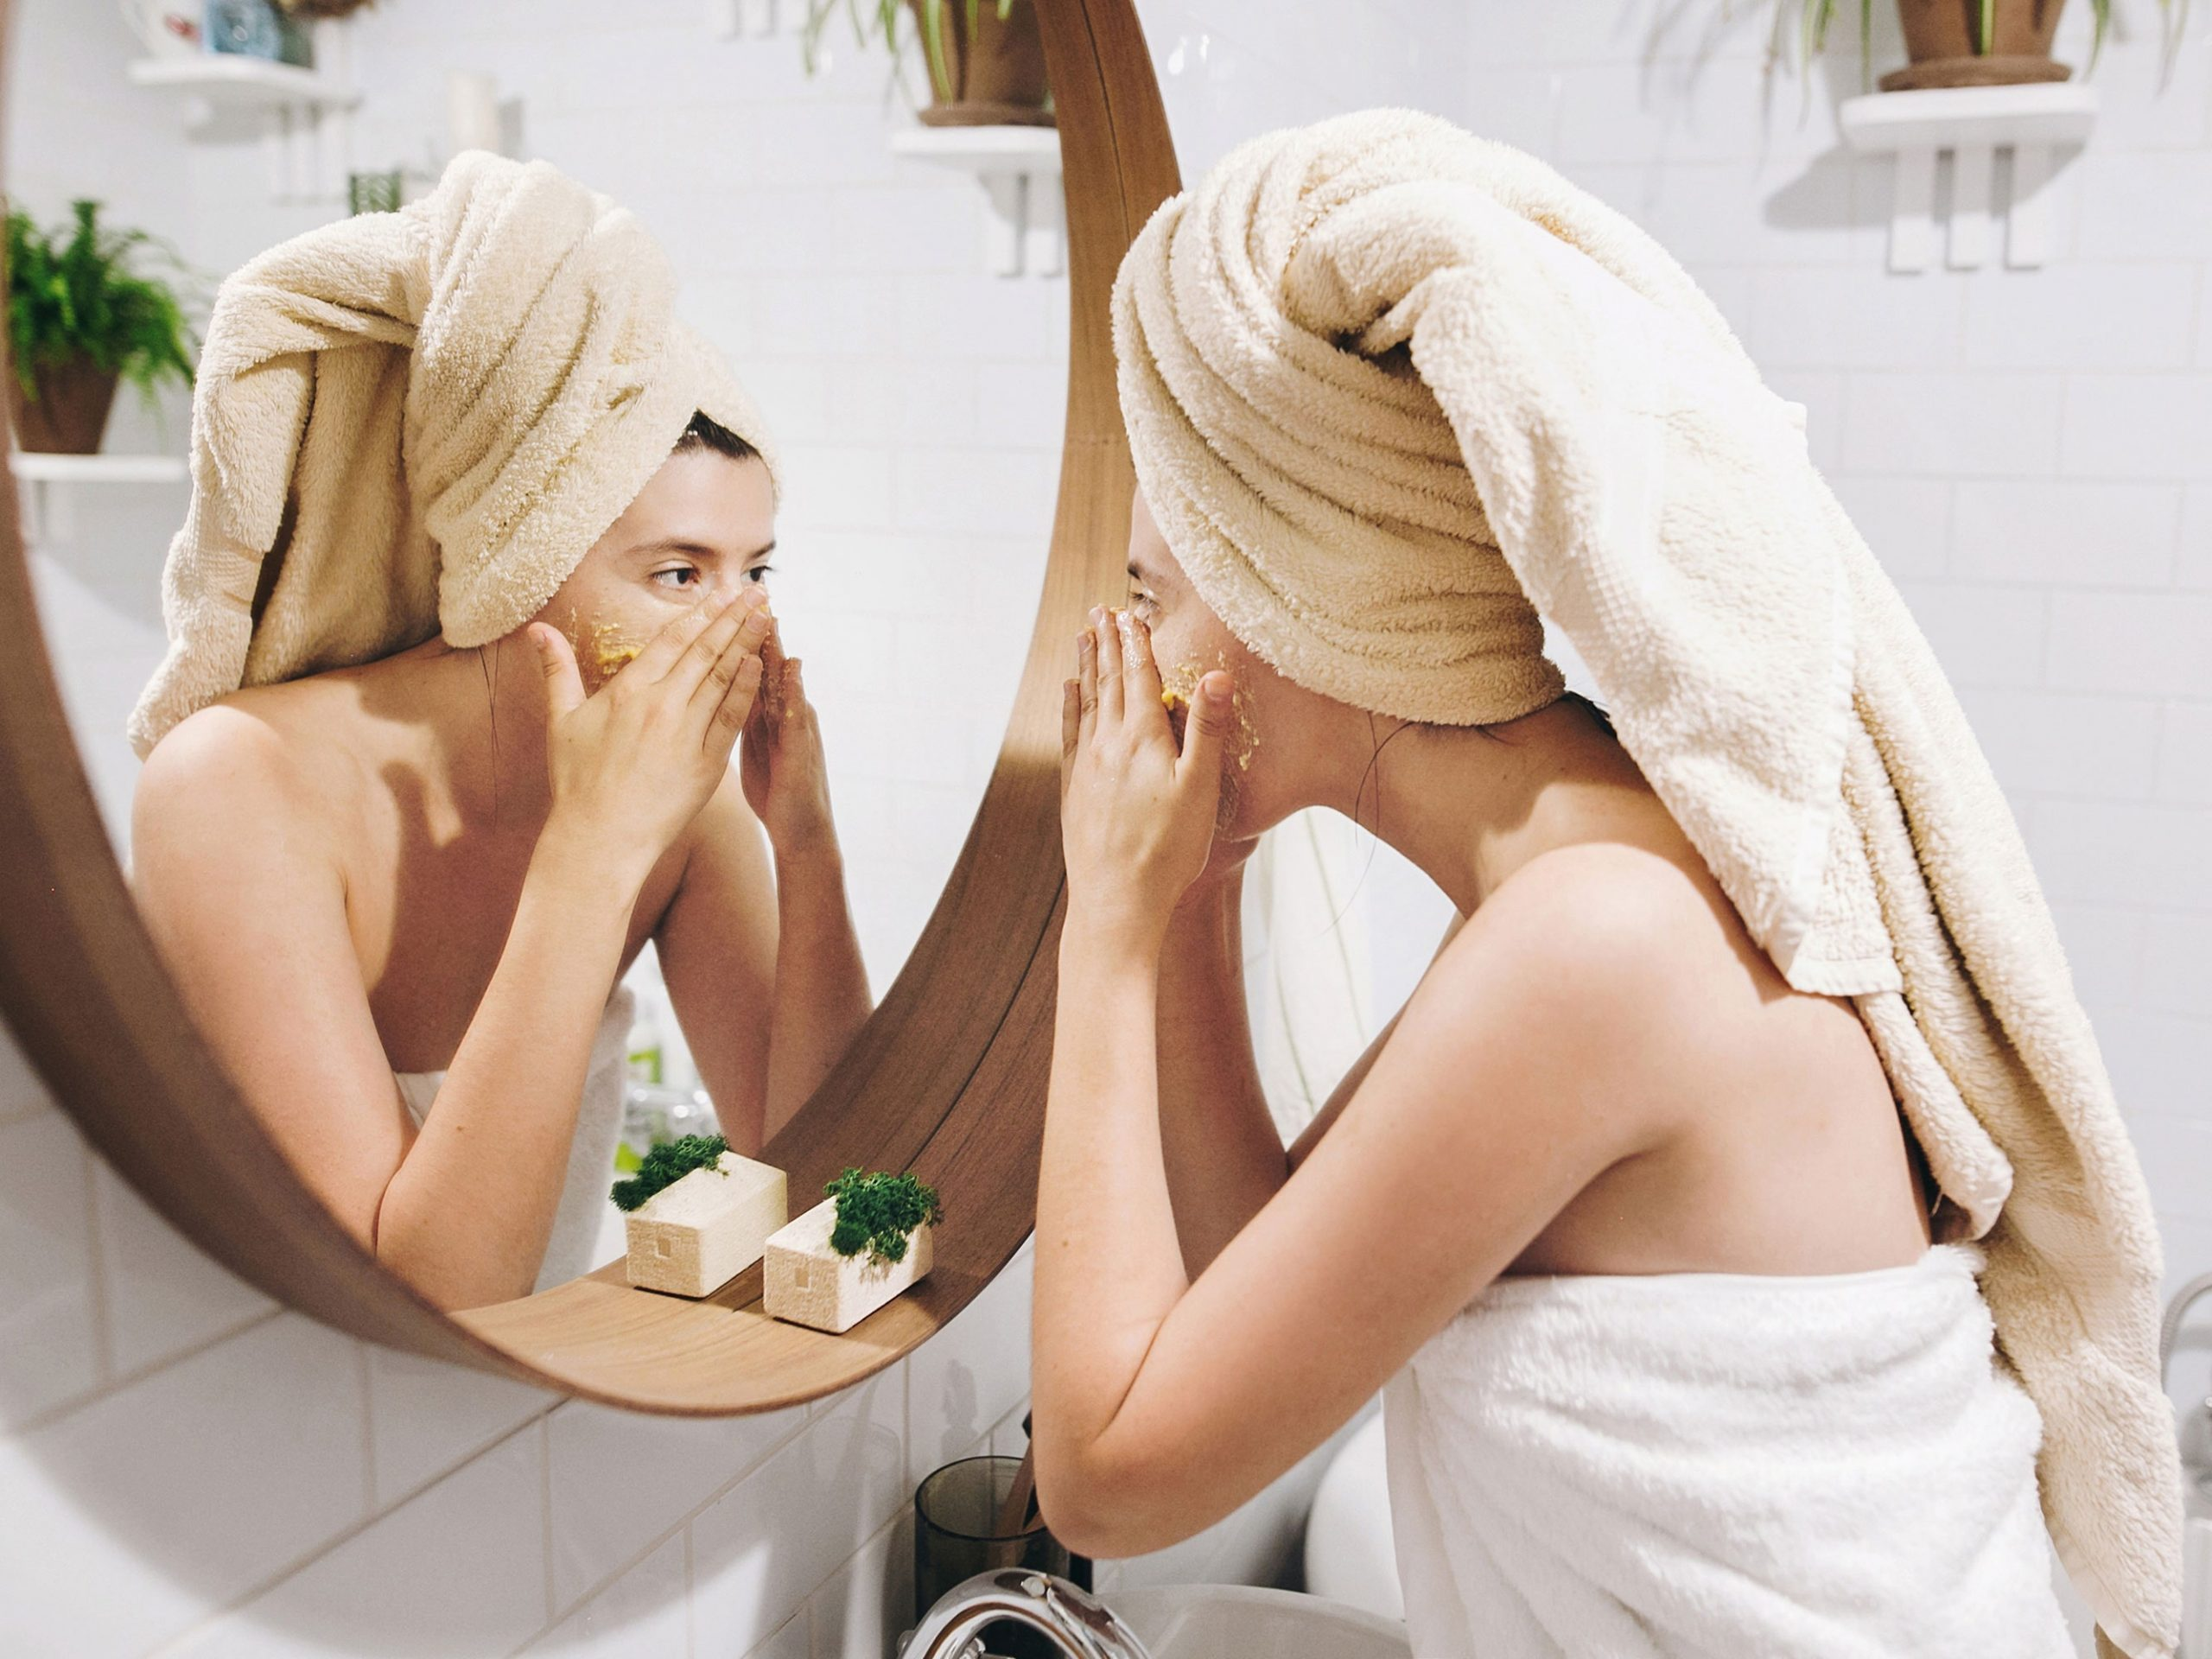 Skincare tips for your face